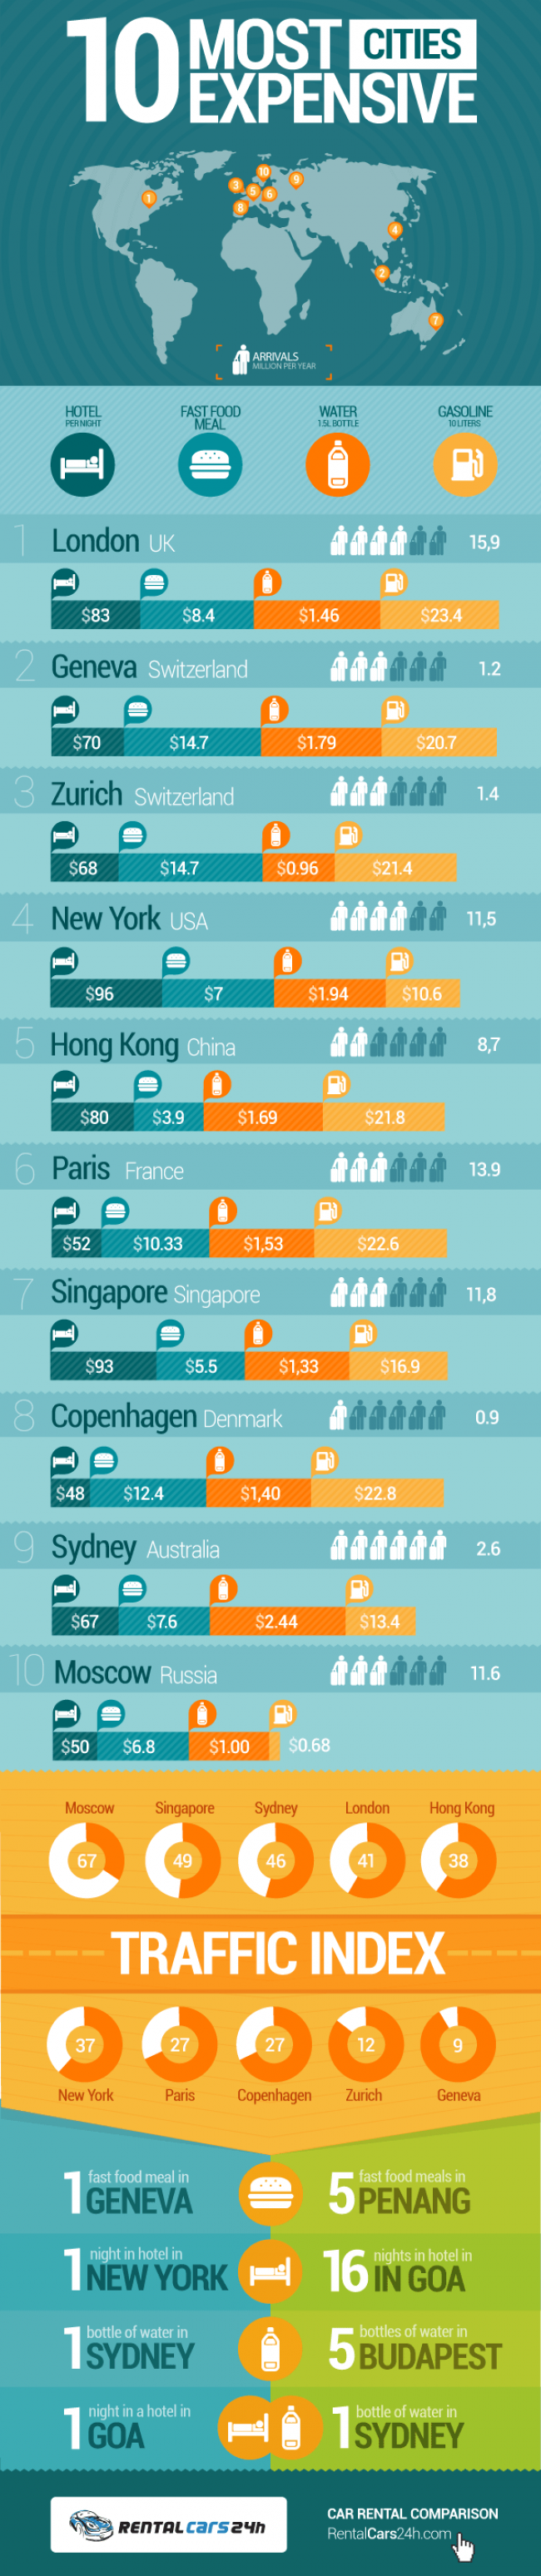 10 Most Expensive Cities